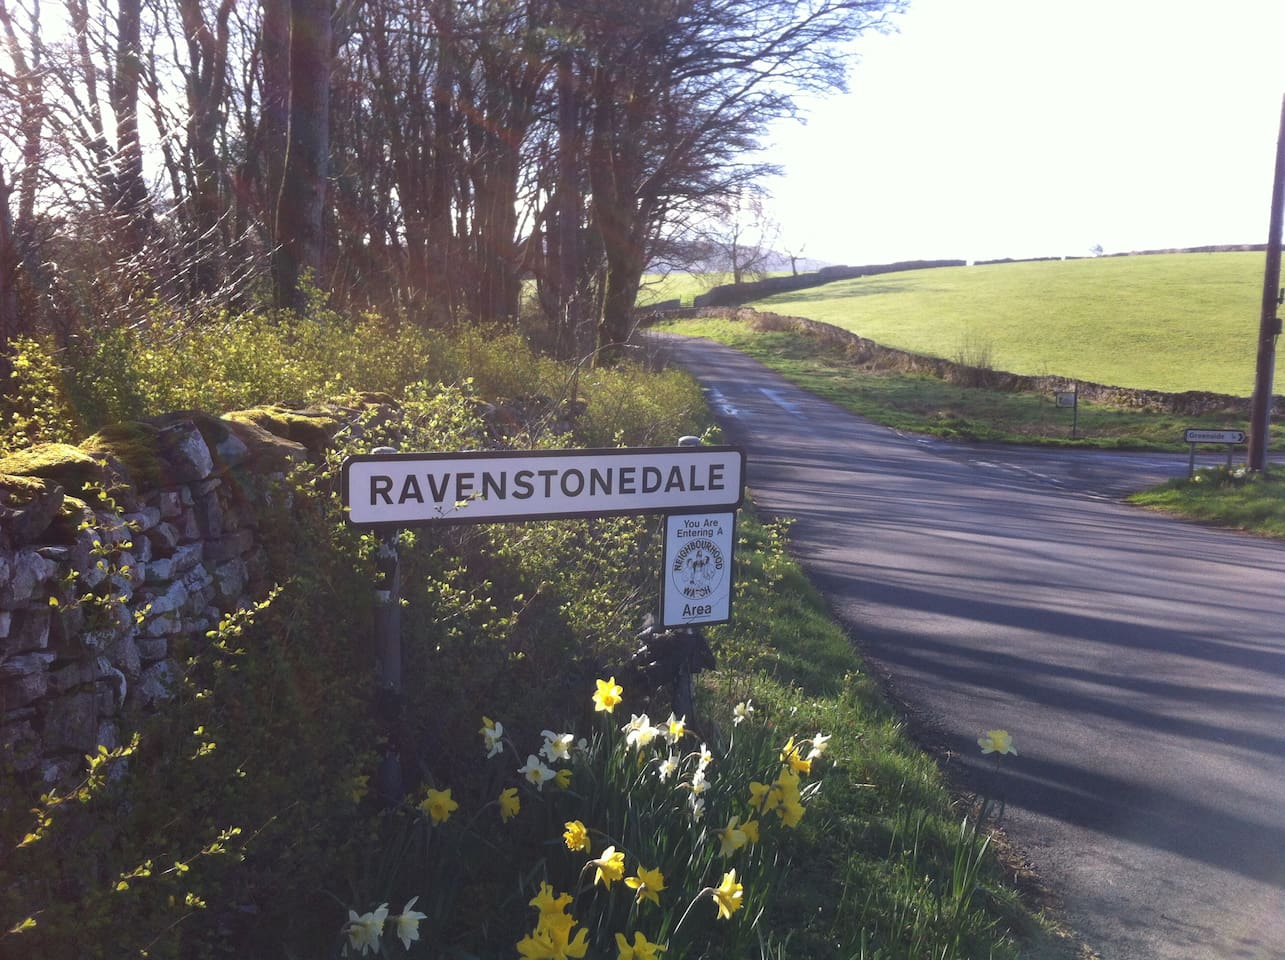 Located just 1 mile scenic walk from 2 great food pubs, public golf, tennis, art gallery, pub shop,cycling, walking, fishing, horse riding also close by.